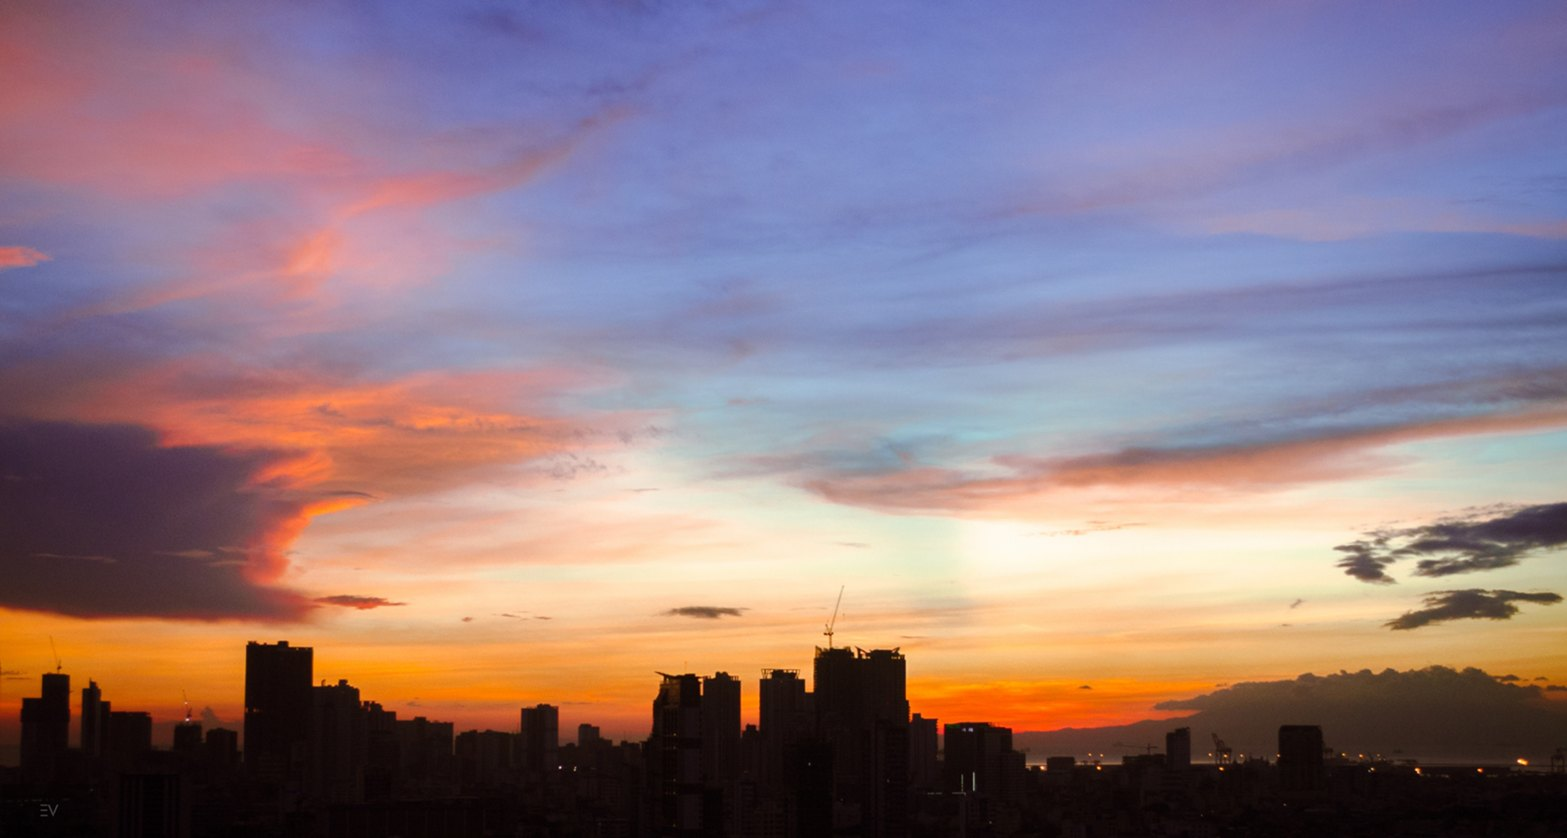 A photo of silhouette high rise buildings by Eldon Vince